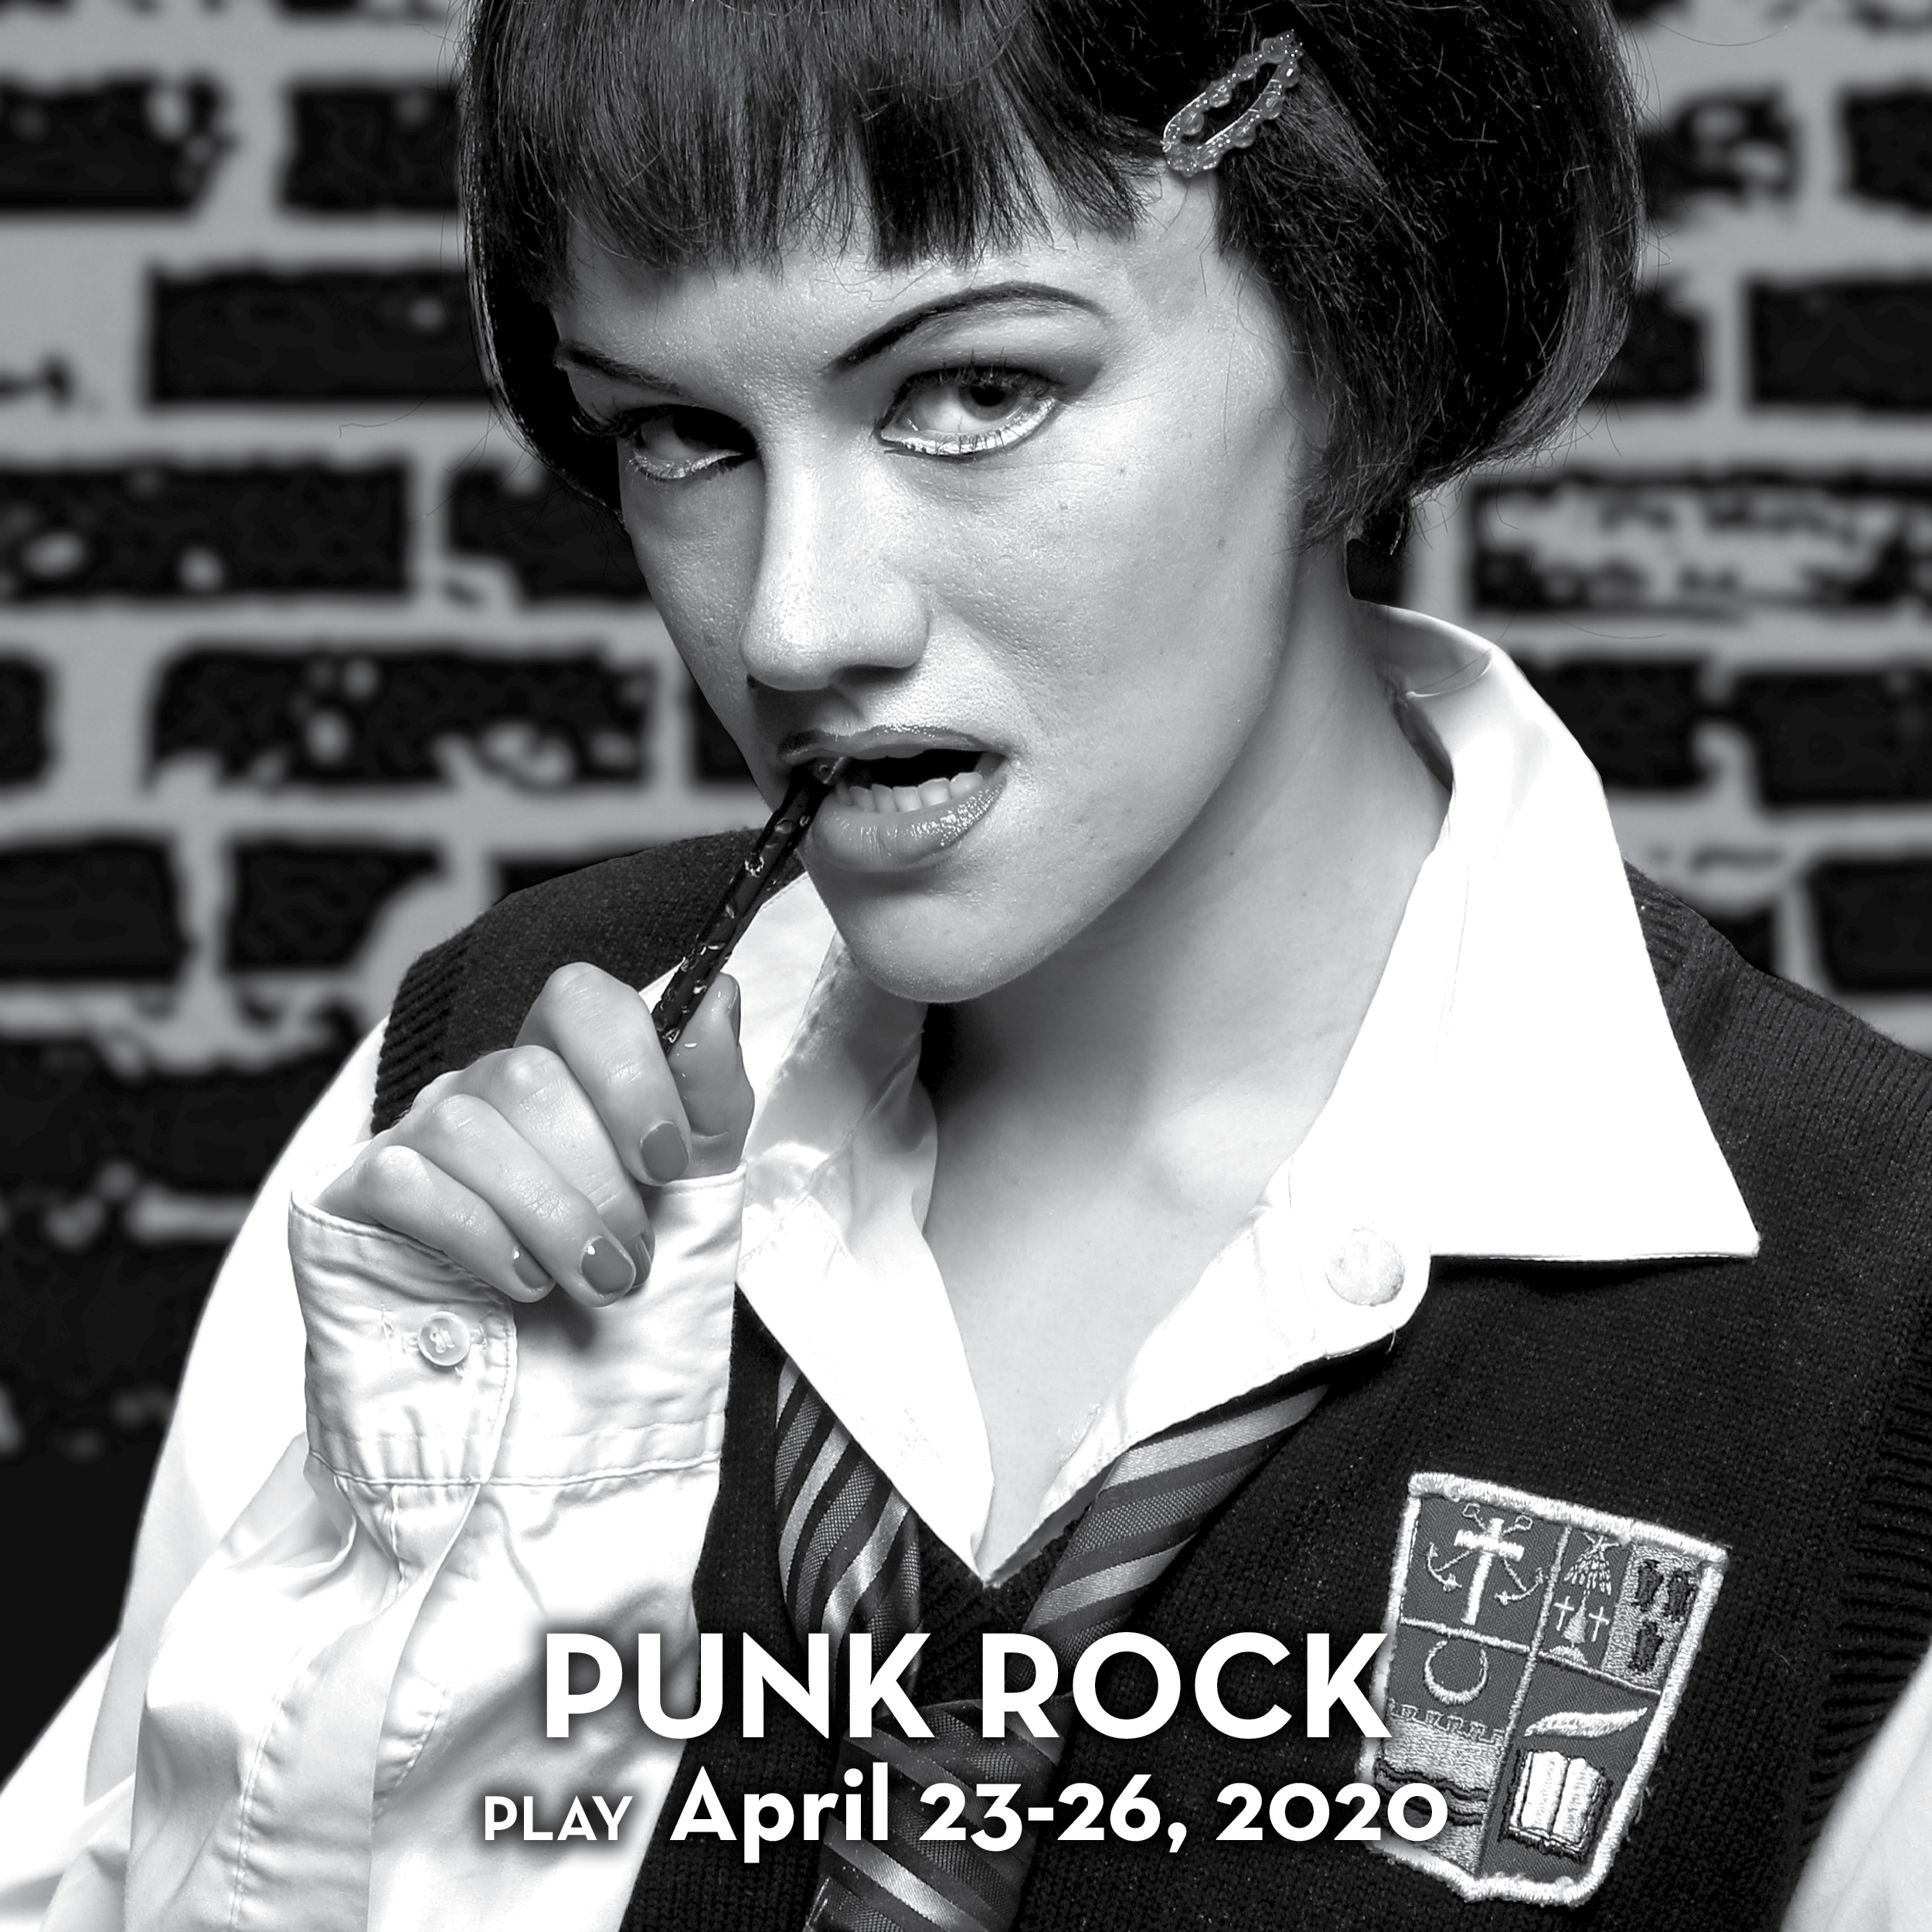 A black and white photo of a young woman wearing a school uniform and Gothic make-up in a promotional image for the play 'Punk Rock.' Photo by Mark Lyons.